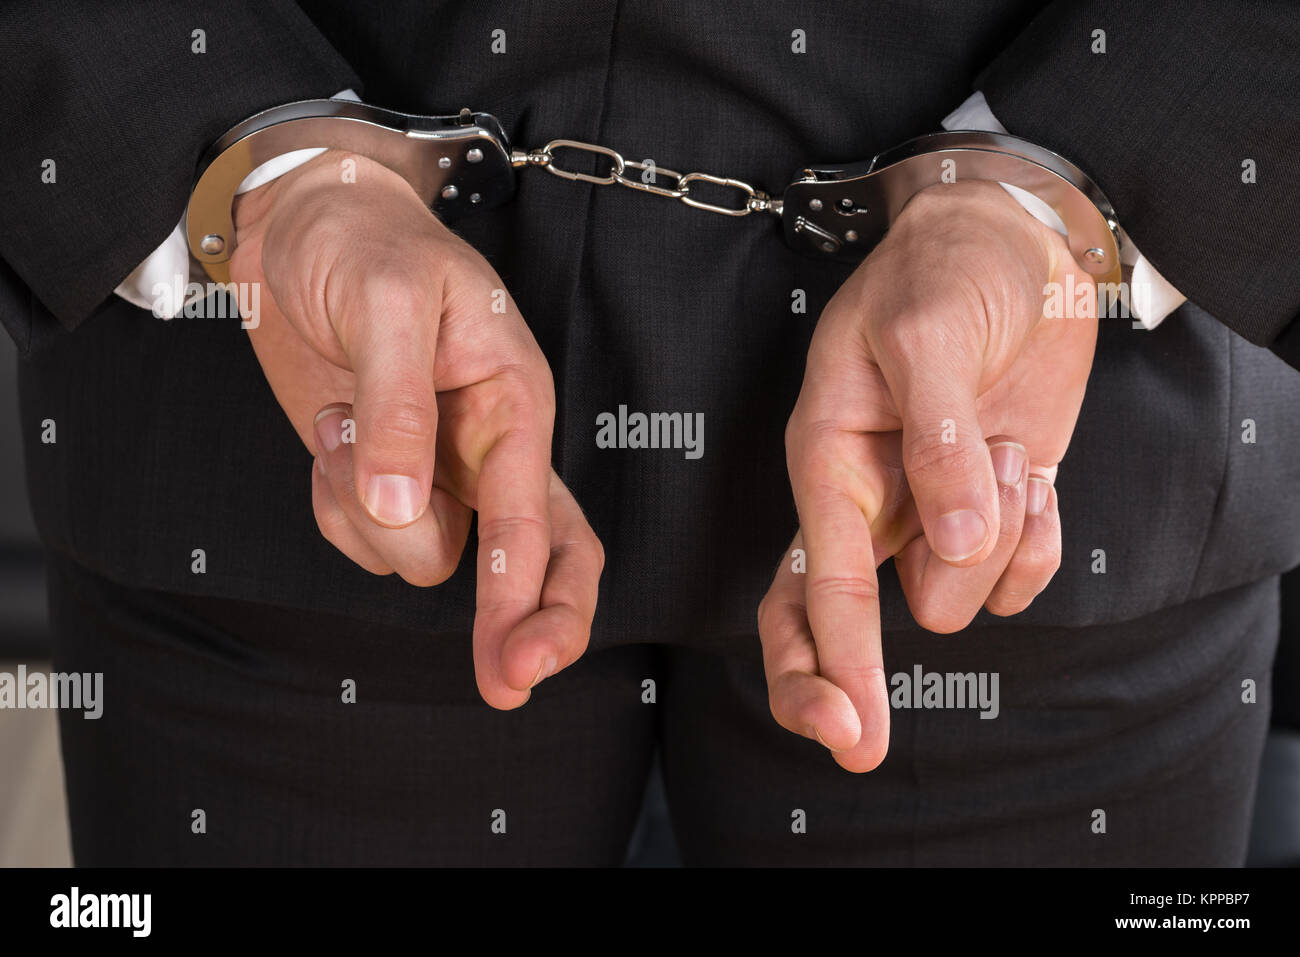 Businessman With Handcuffs - Stock Image